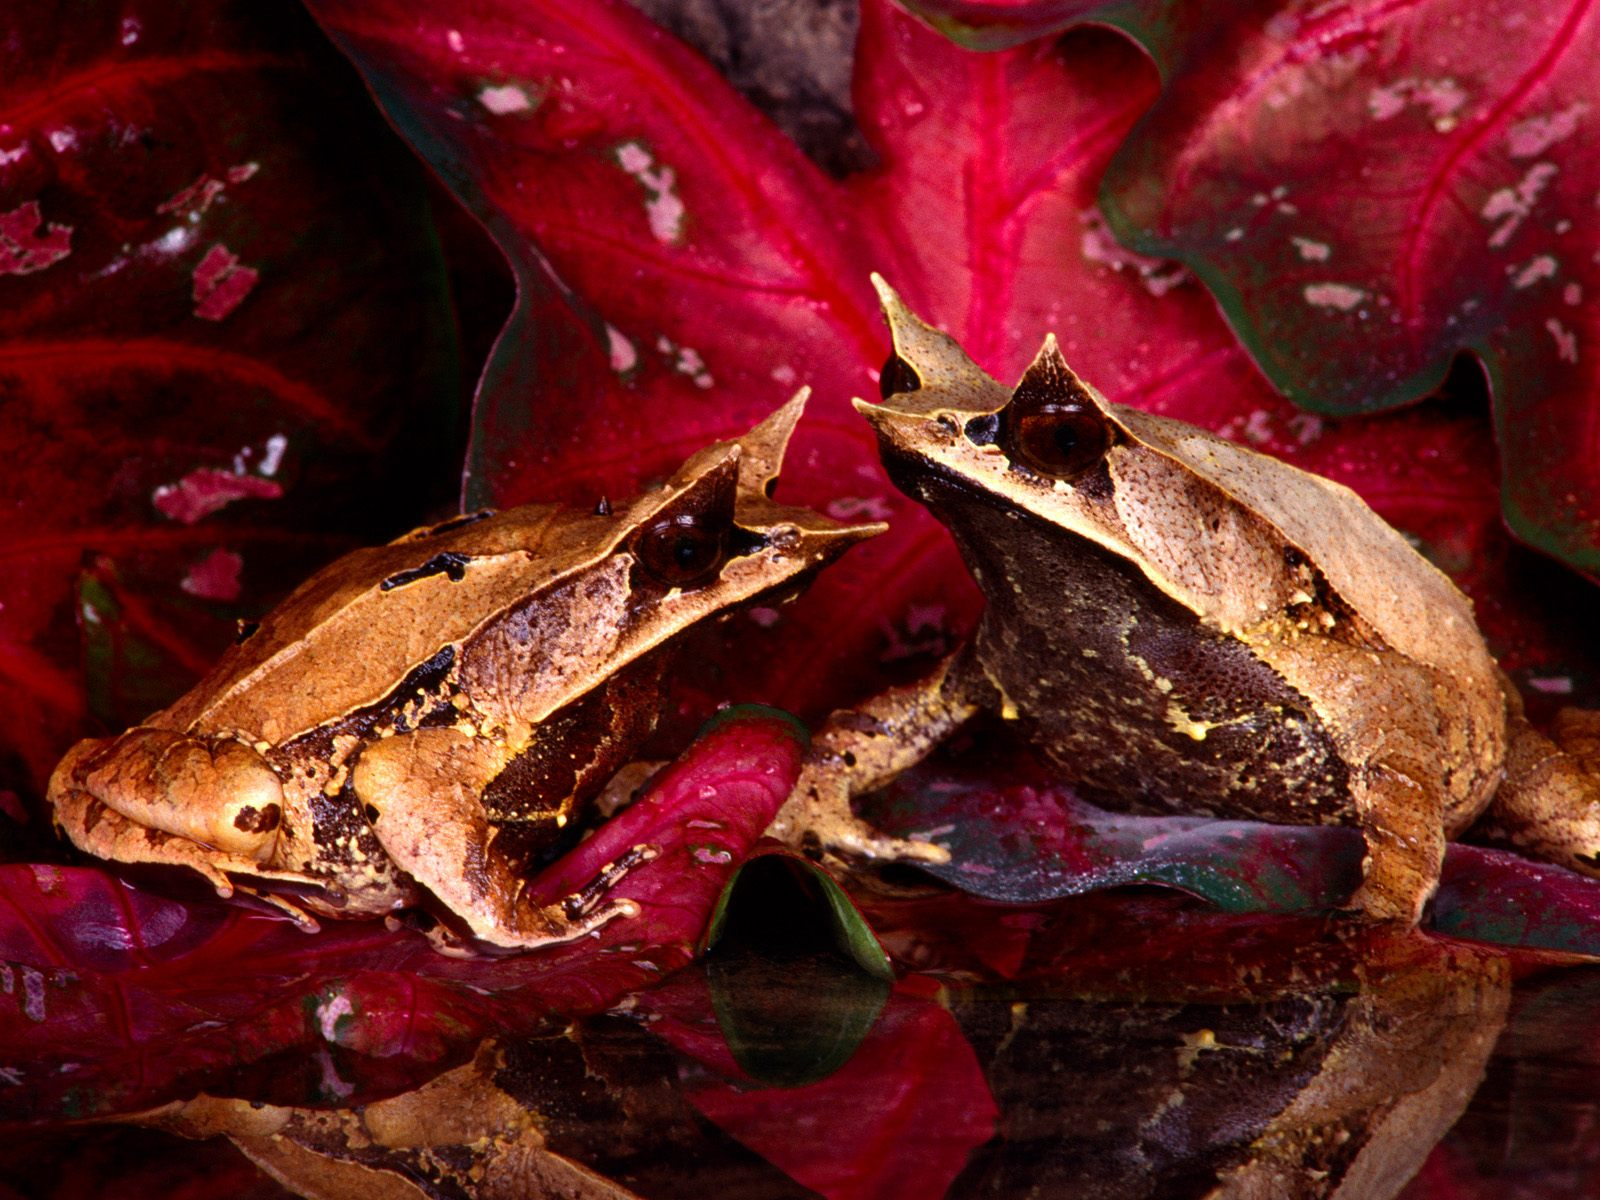 http://1.bp.blogspot.com/-DkFhL3T894I/Tn7EcozJc6I/AAAAAAAADkU/8HrjlRGo8HE/s1600/20_Colorful_Frogs_Wallpapers_HQ__1600_X_1200__www_HQPictures_tk-20_jpg_Frog_Wallpaper_14.jpg